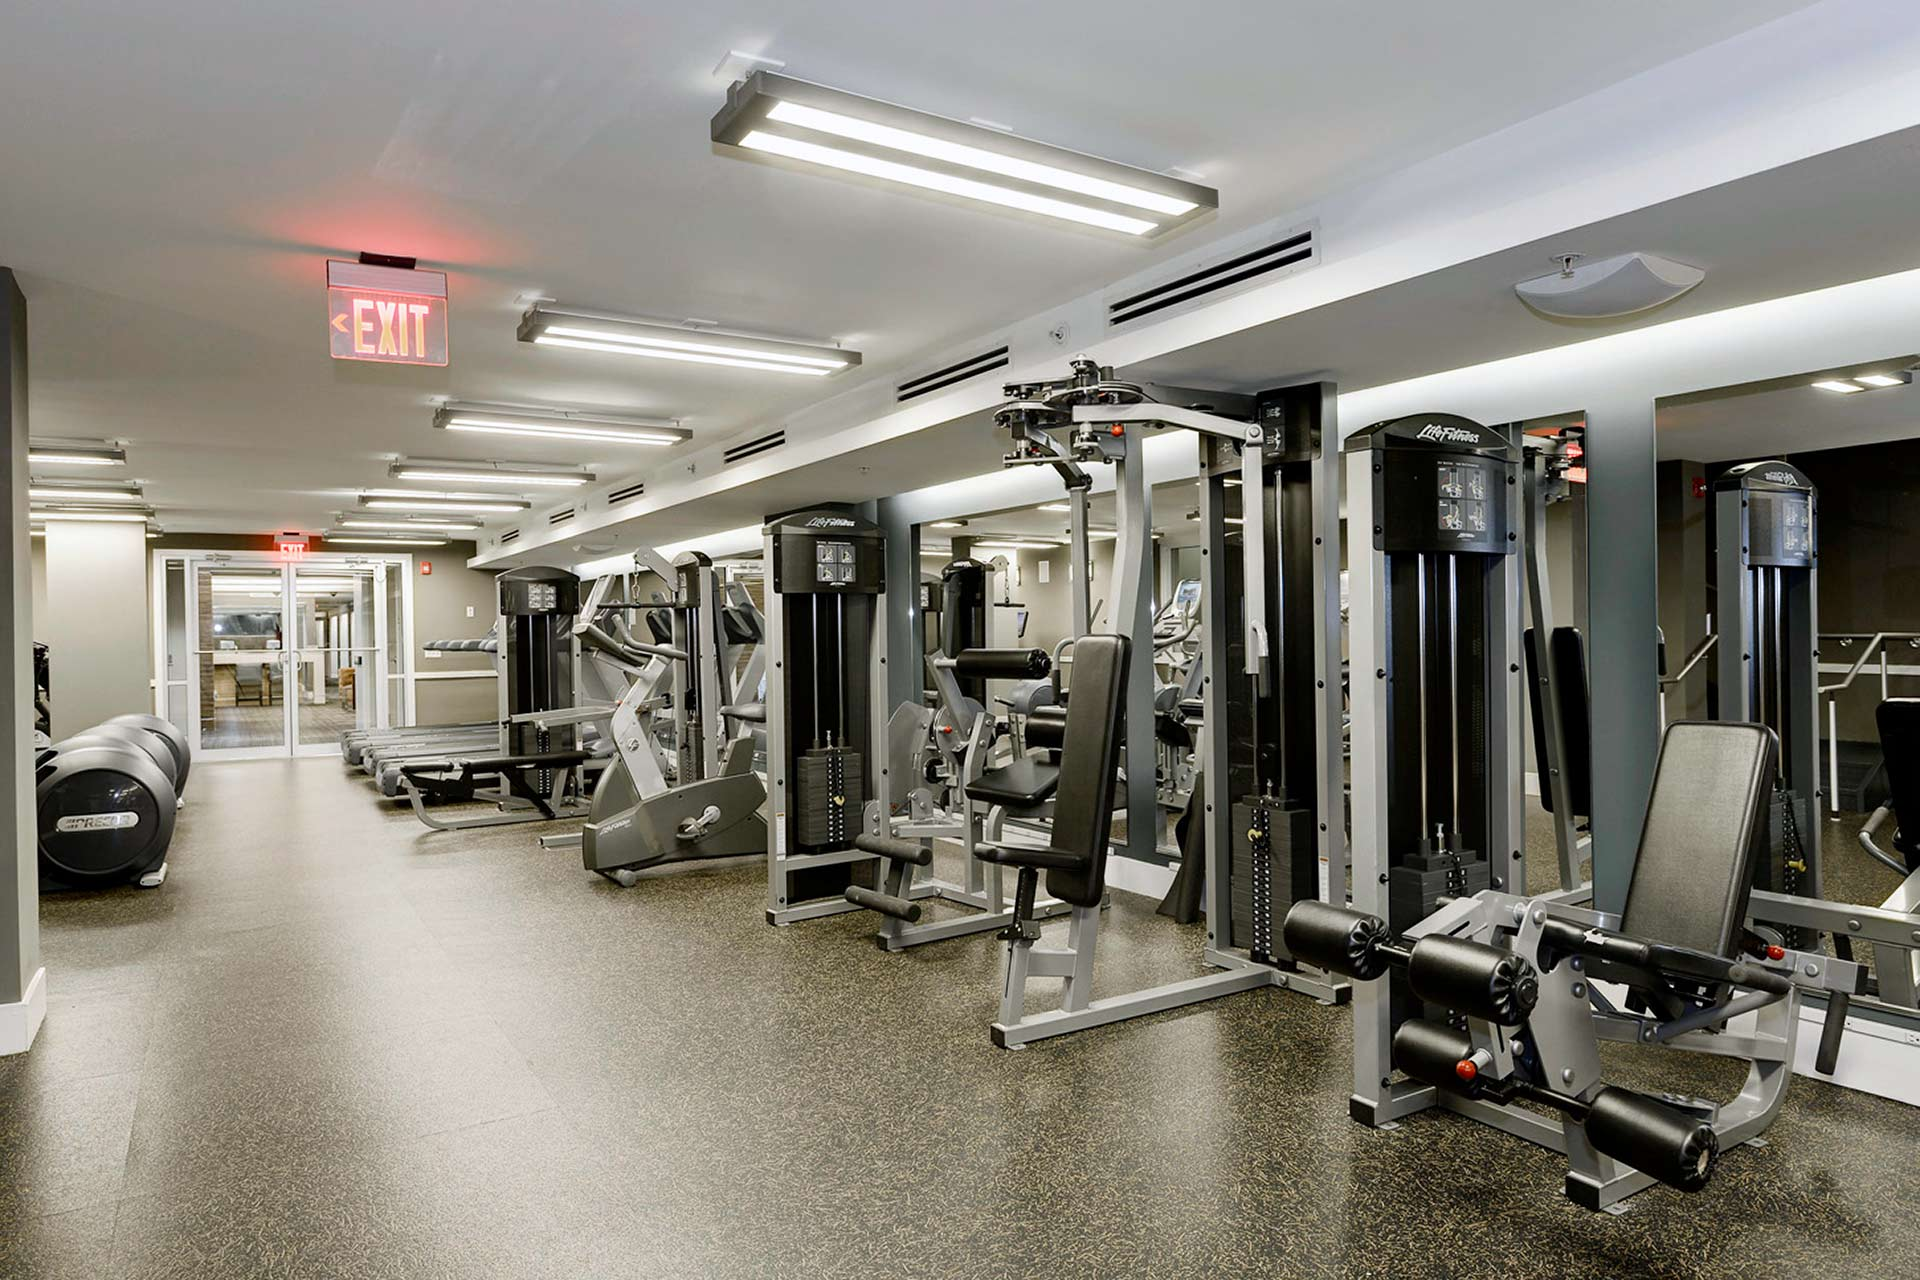 Large fitness room with impact absorbent flooring and strength training equipment along the right, mirrored wall